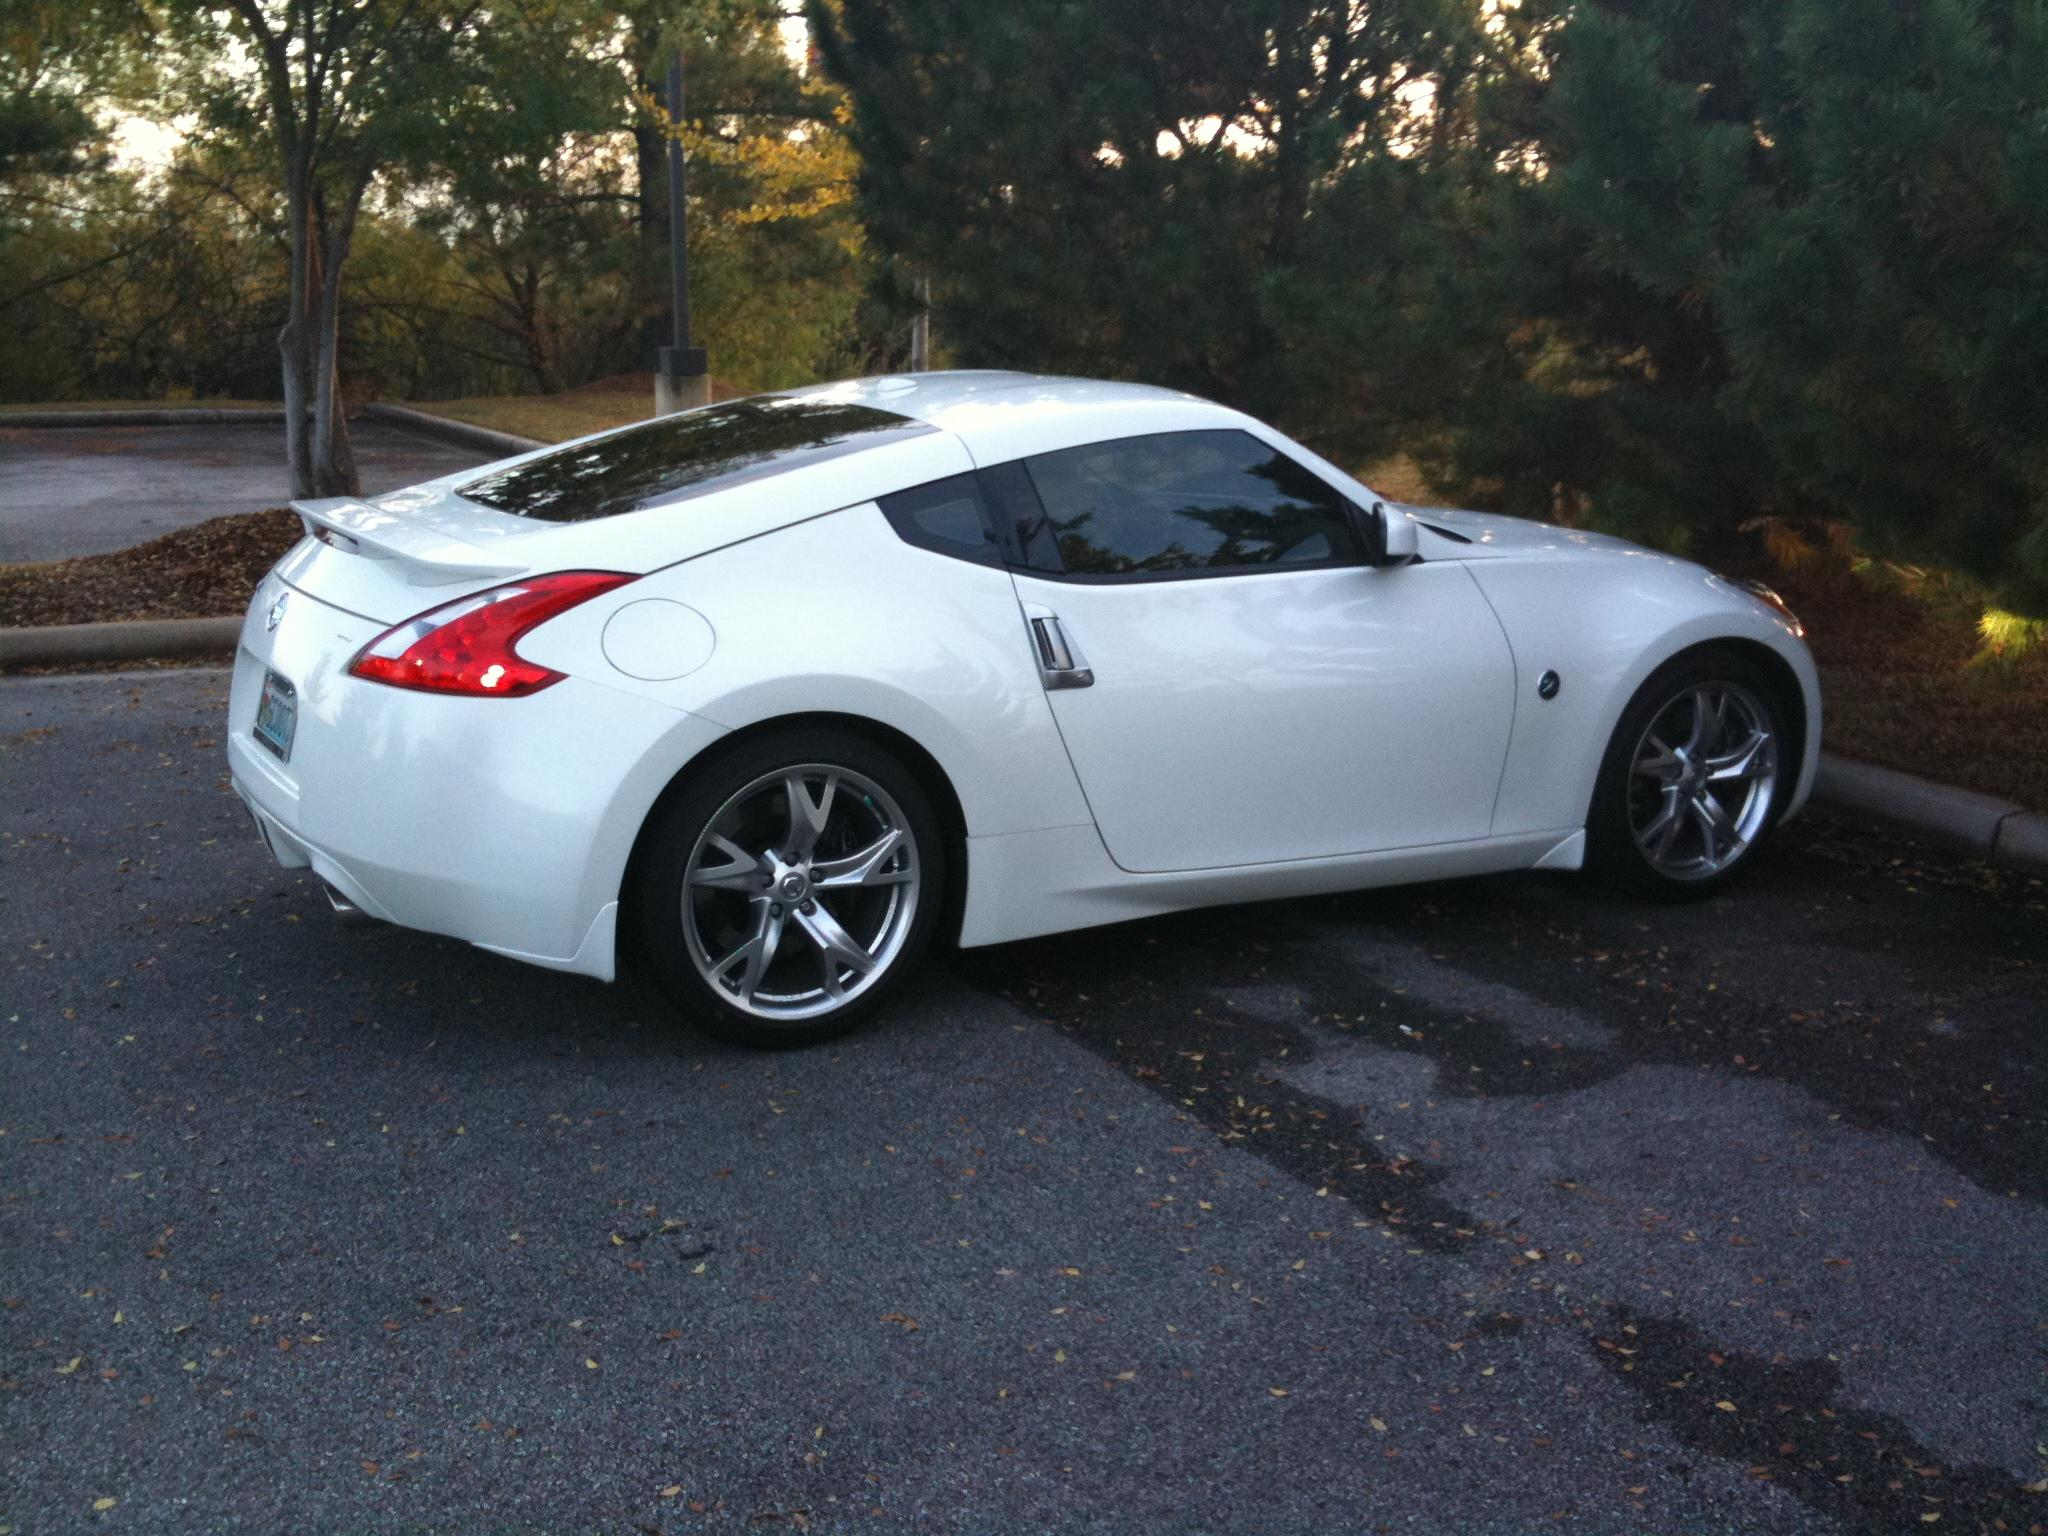 2013 370z wallpaper - photo #37